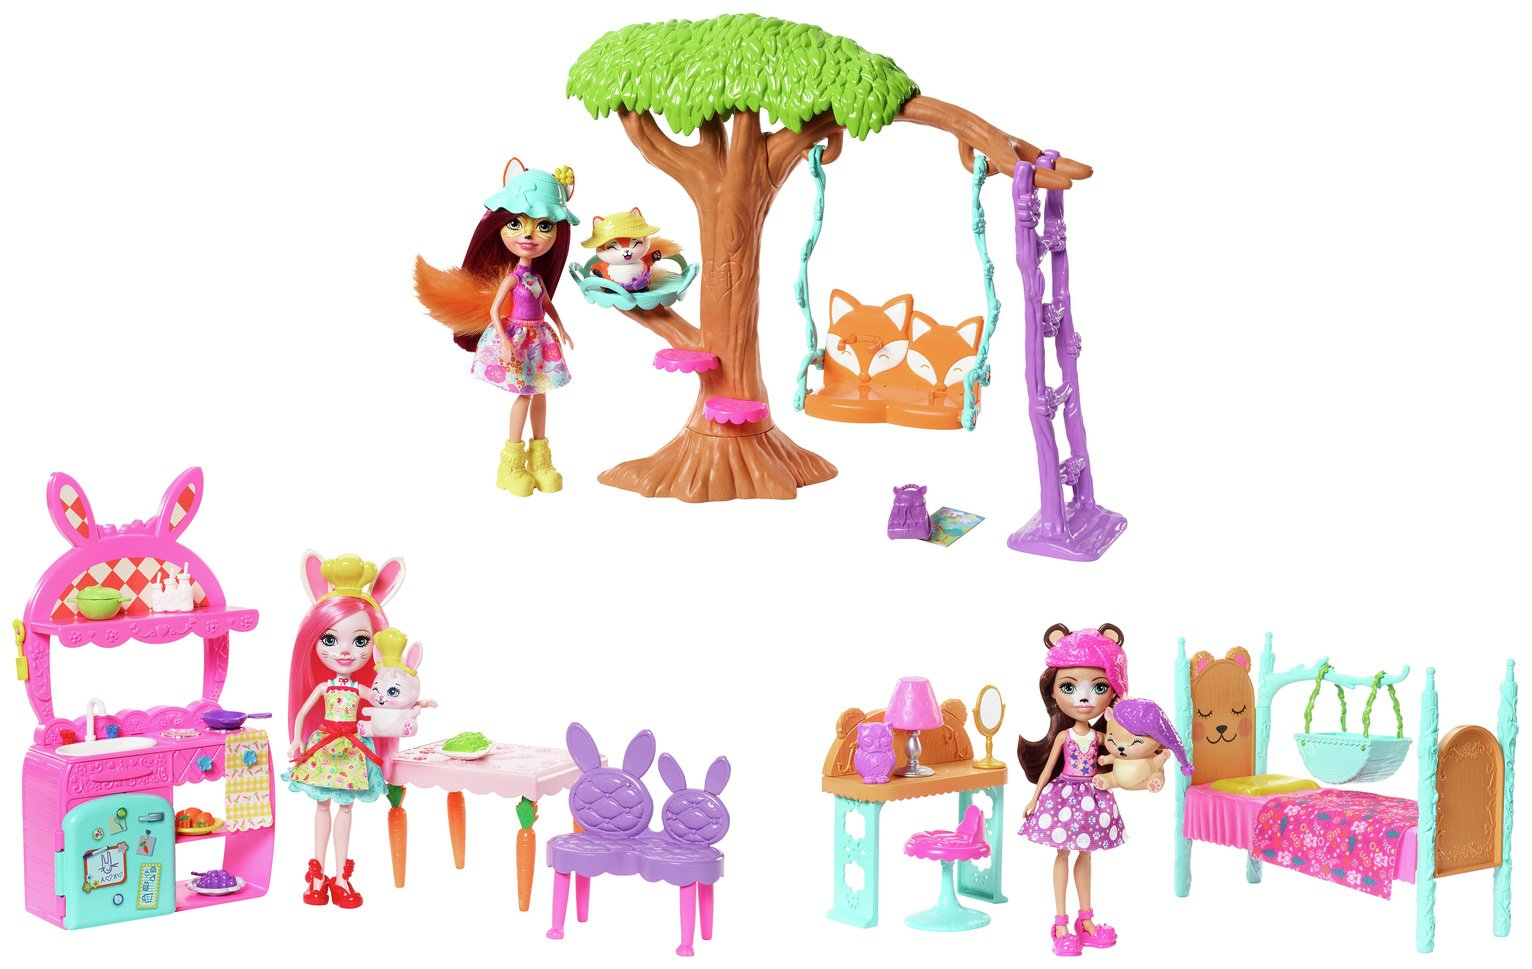 Enchantimals Dolls and Room Assortment